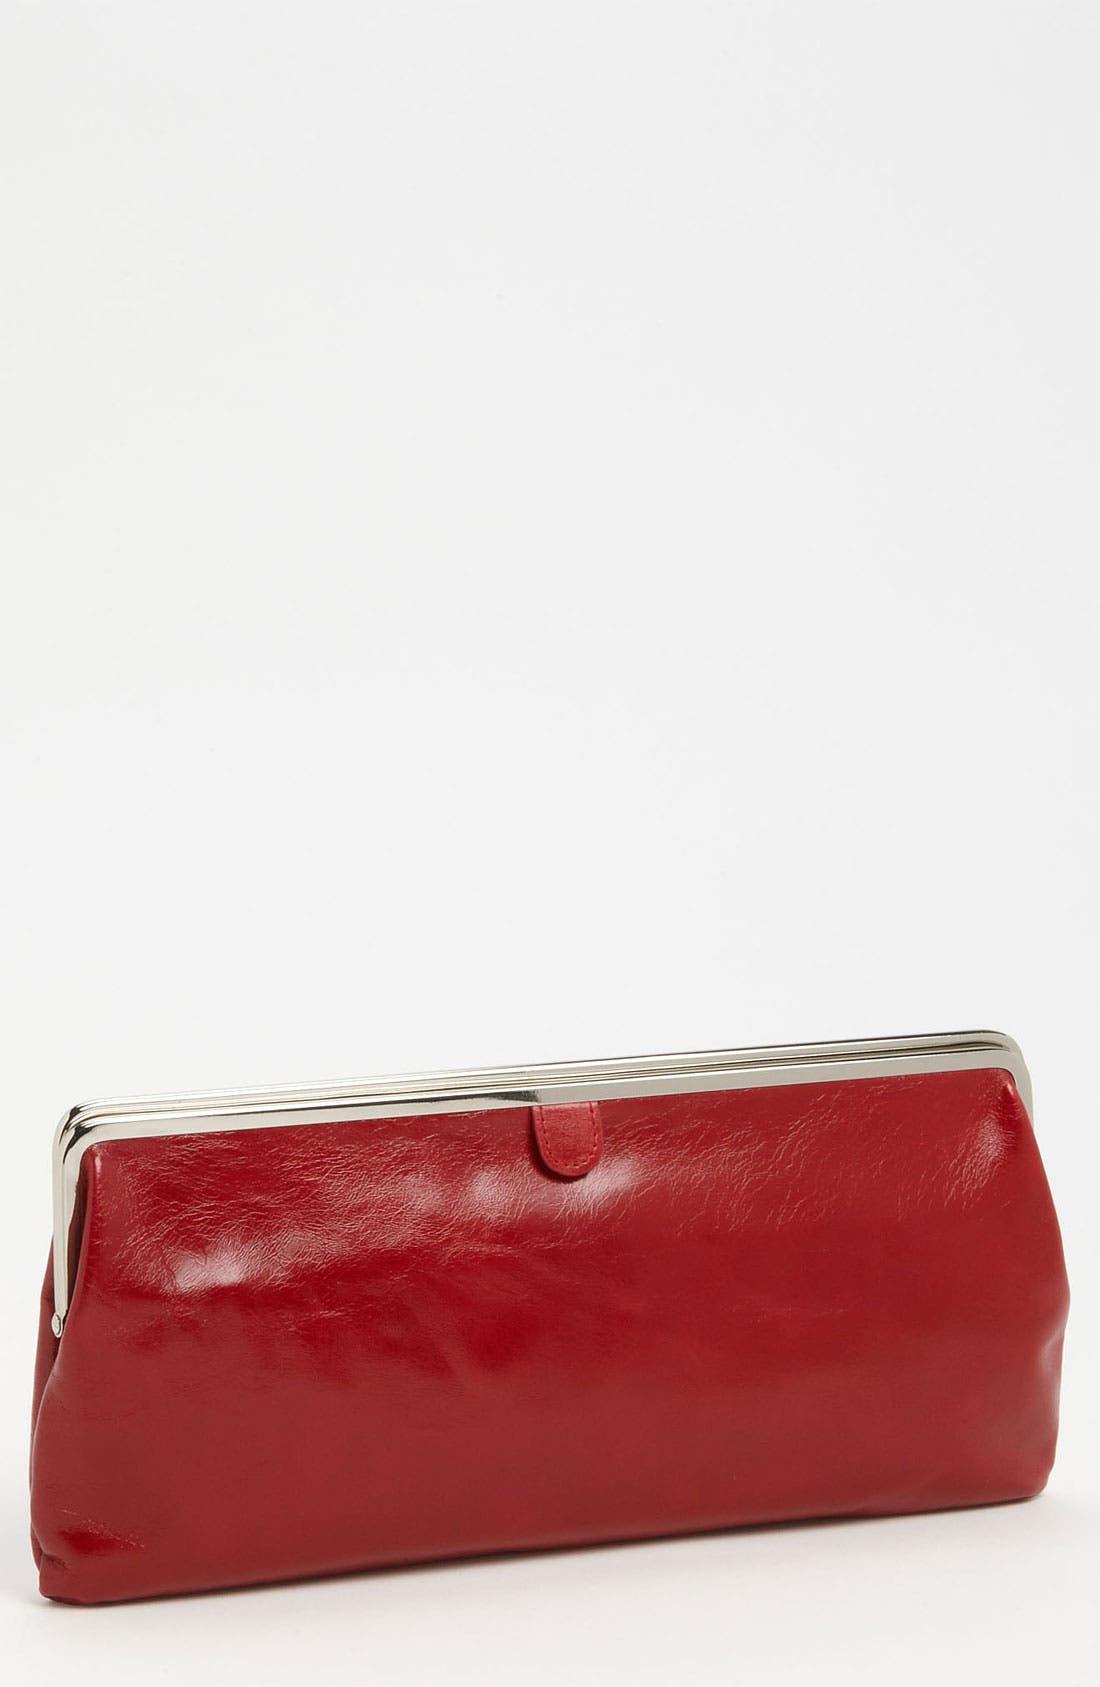 Main Image - Hobo 'Deanna' Clutch